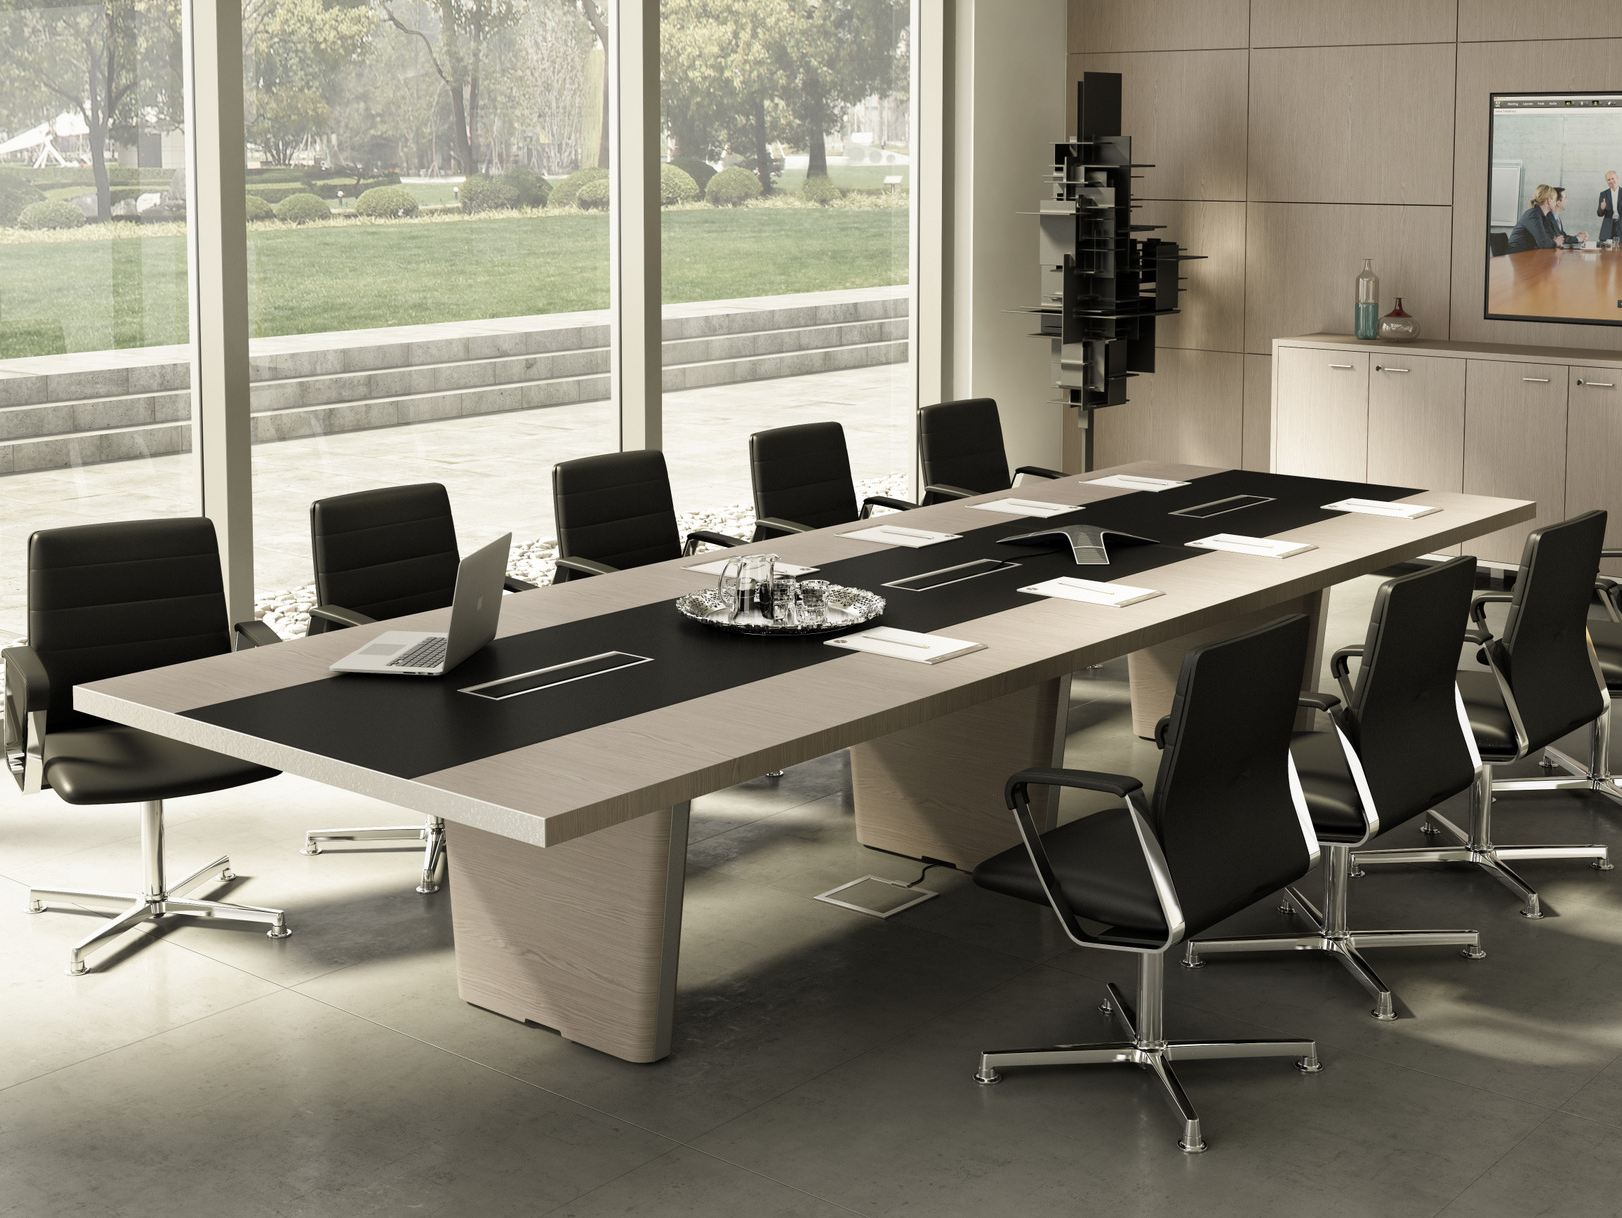 X10 rectangular meeting table x10 collection by for Quadrifoglio sistemi d arredo